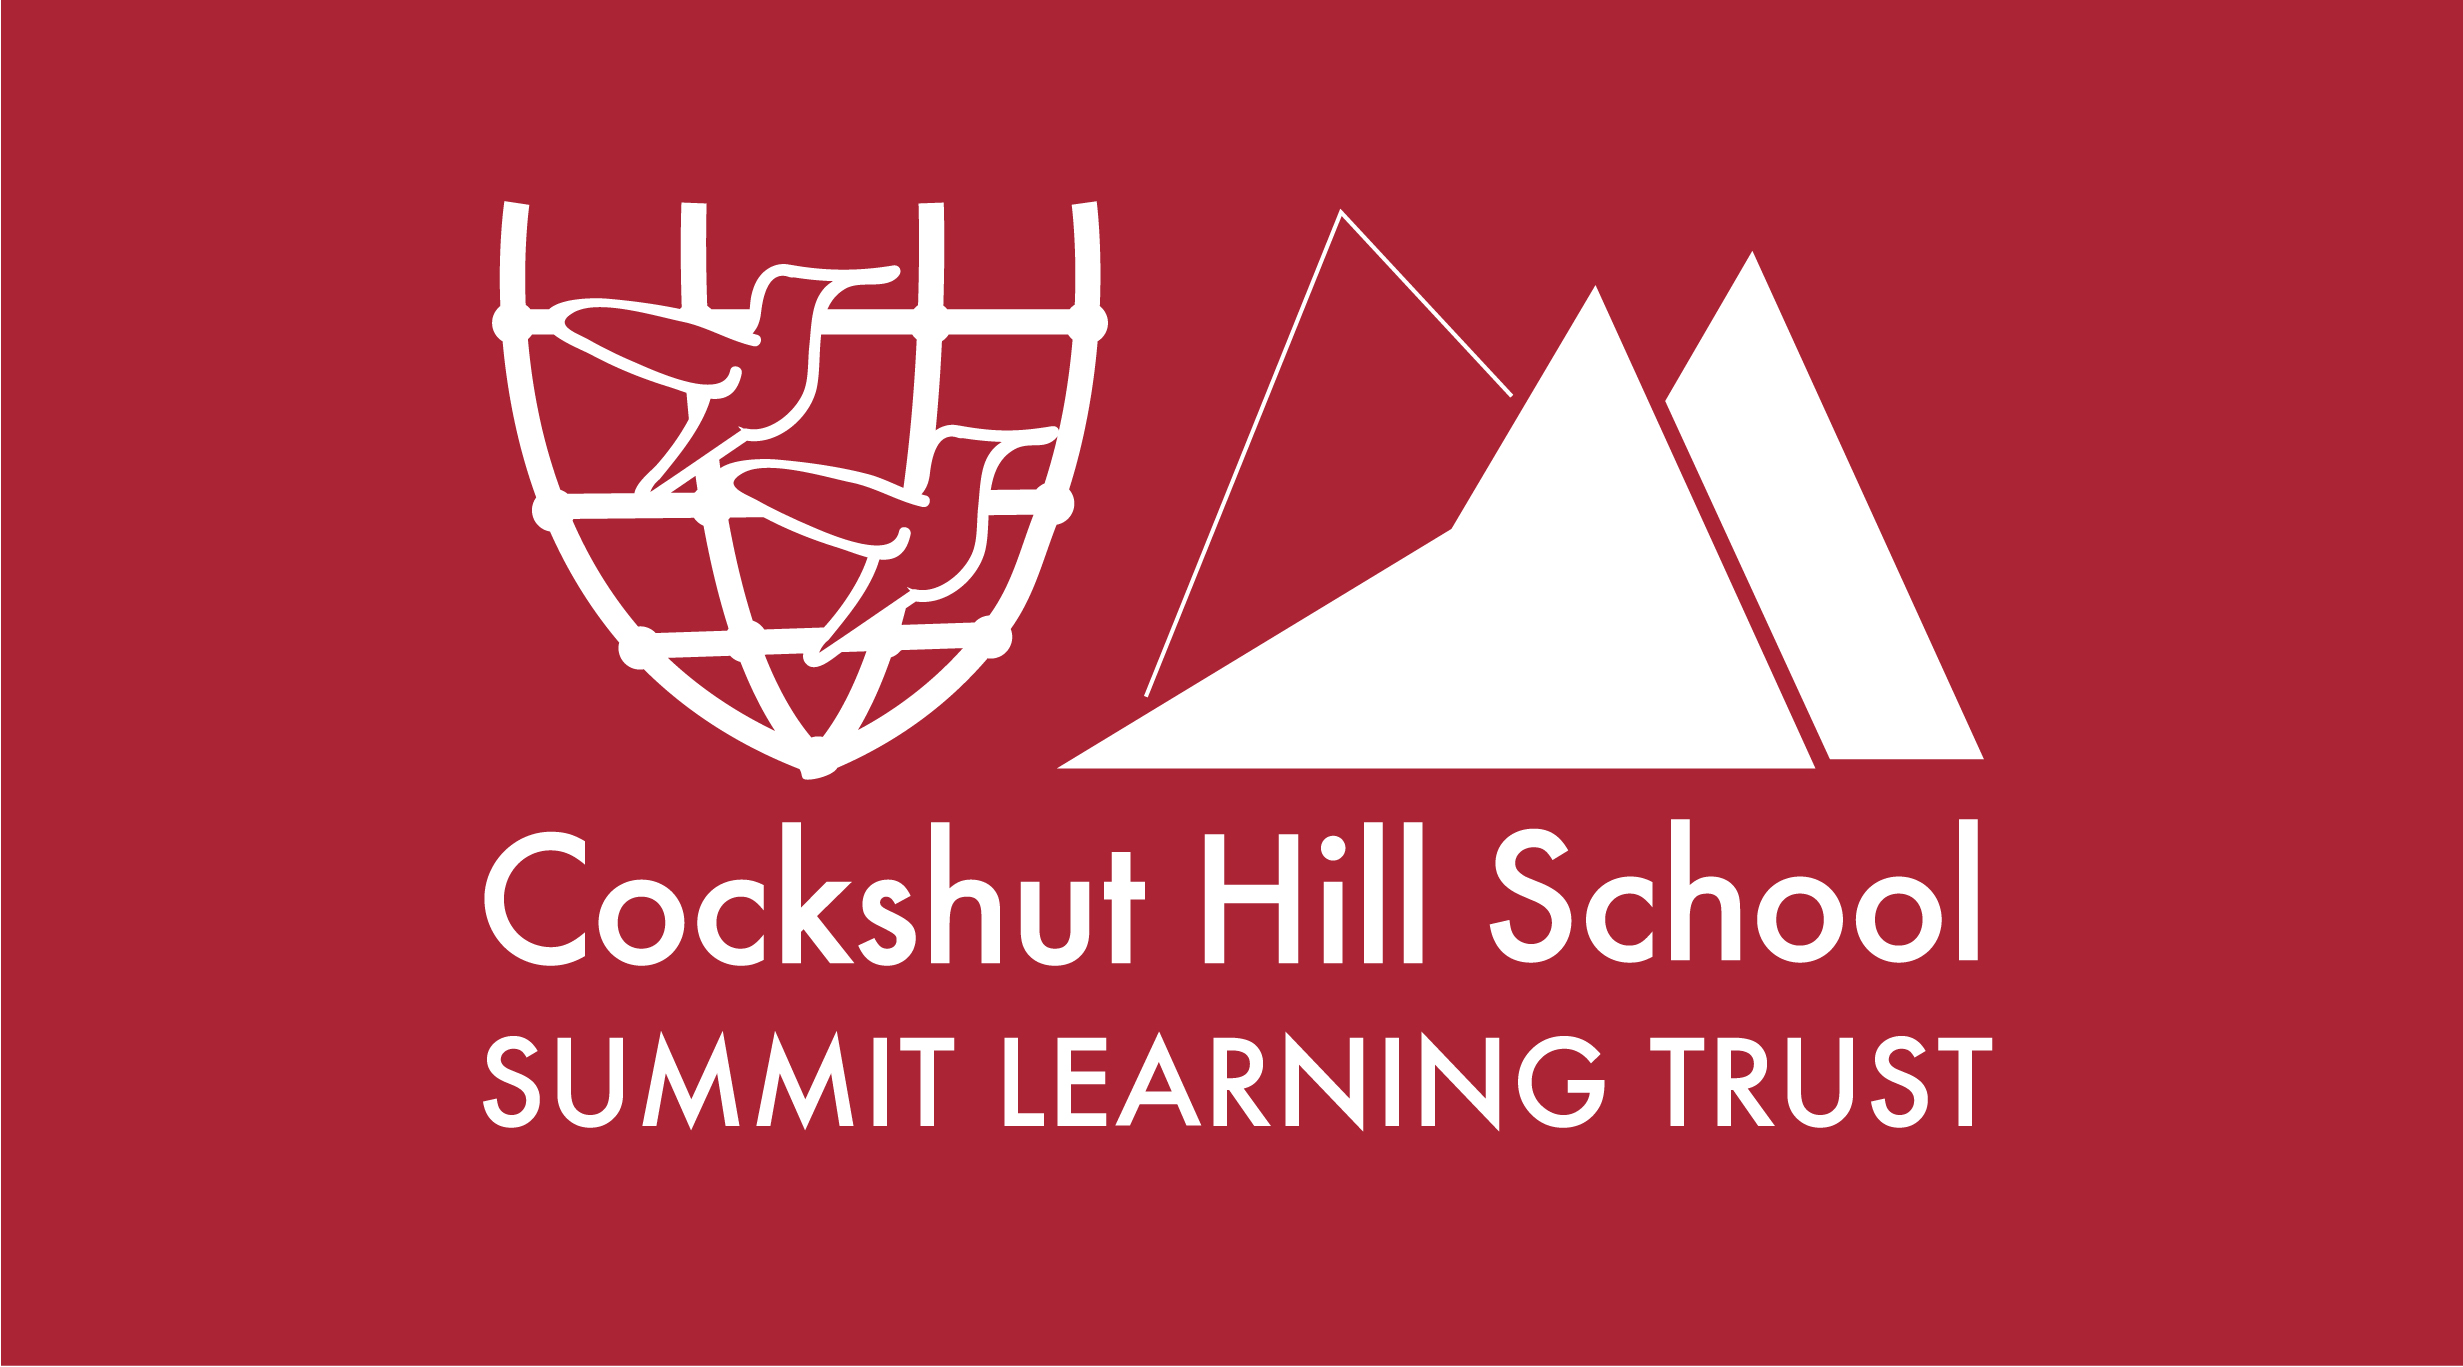 Cockshut Hill School